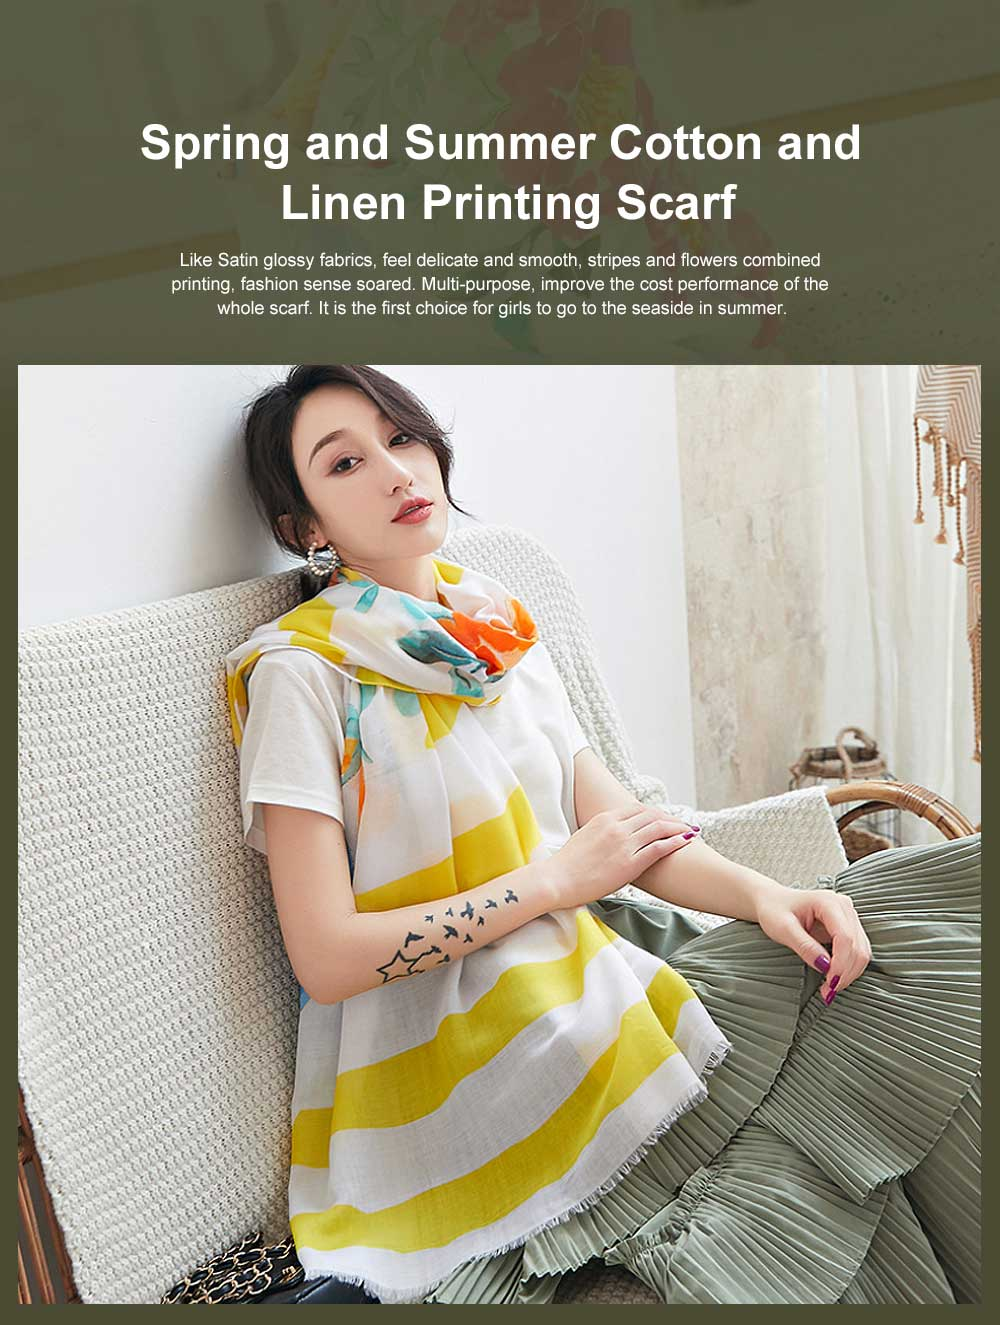 Spring and Summer Cotton Linen Printing Scarf, Ladies Travel Sunscreen Scarf Shawl